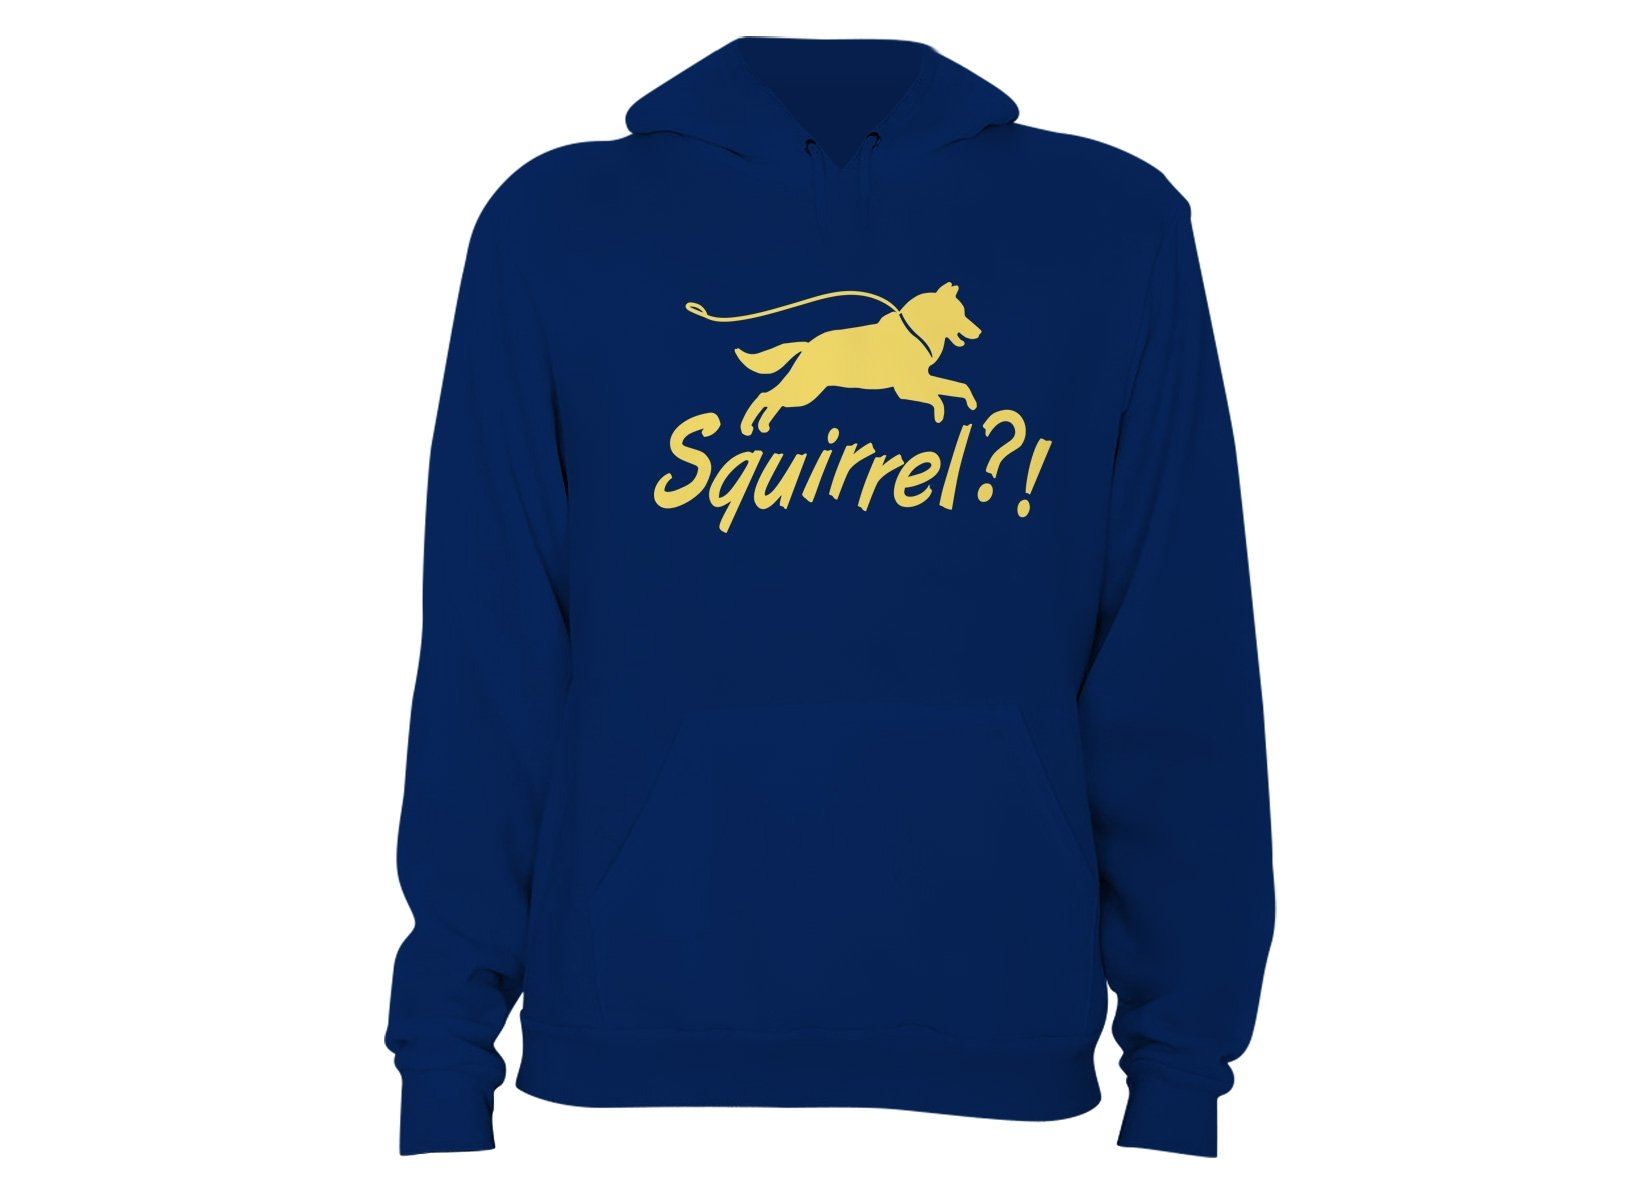 Squirrel?! on Hoodie